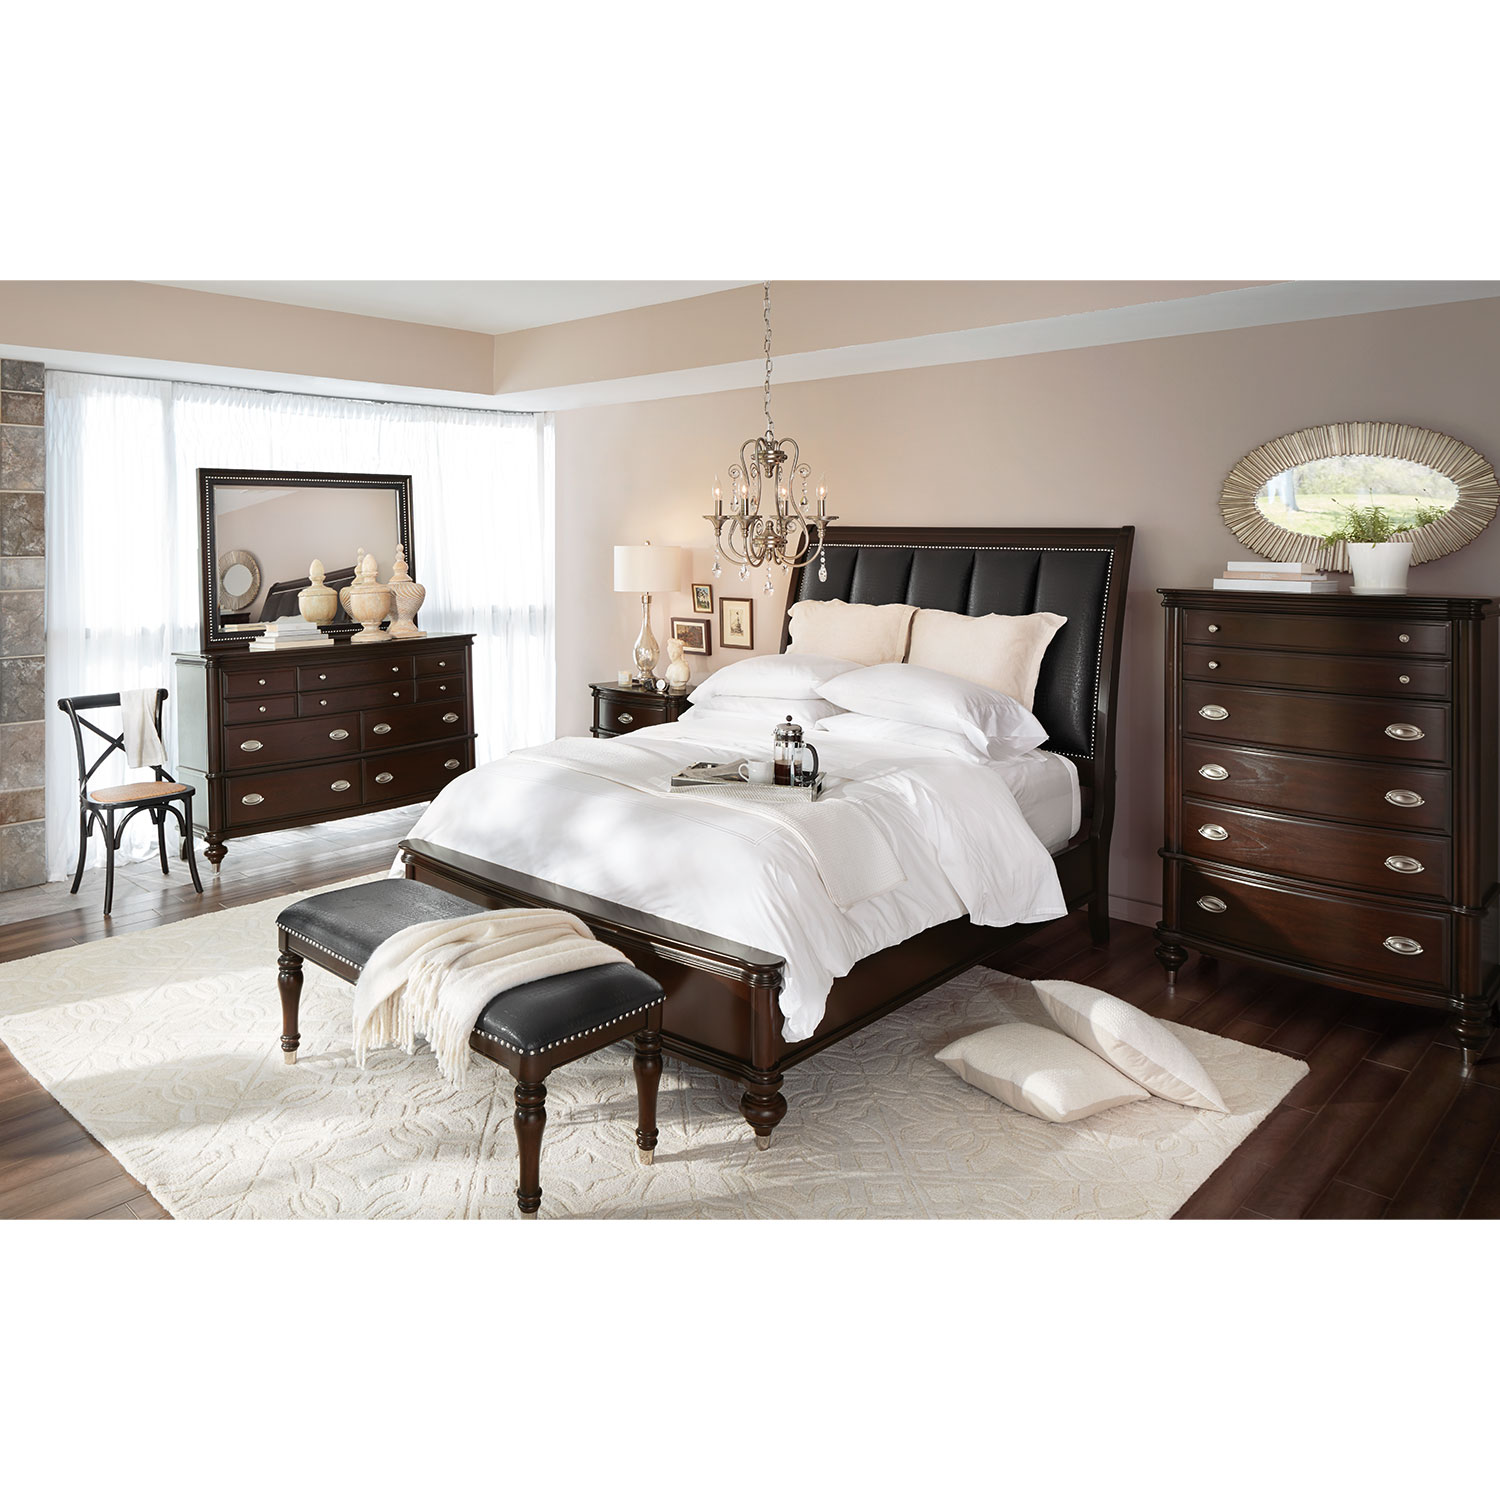 set package furniture explore bed packages additional product video room felicity grey levin bedroom queen